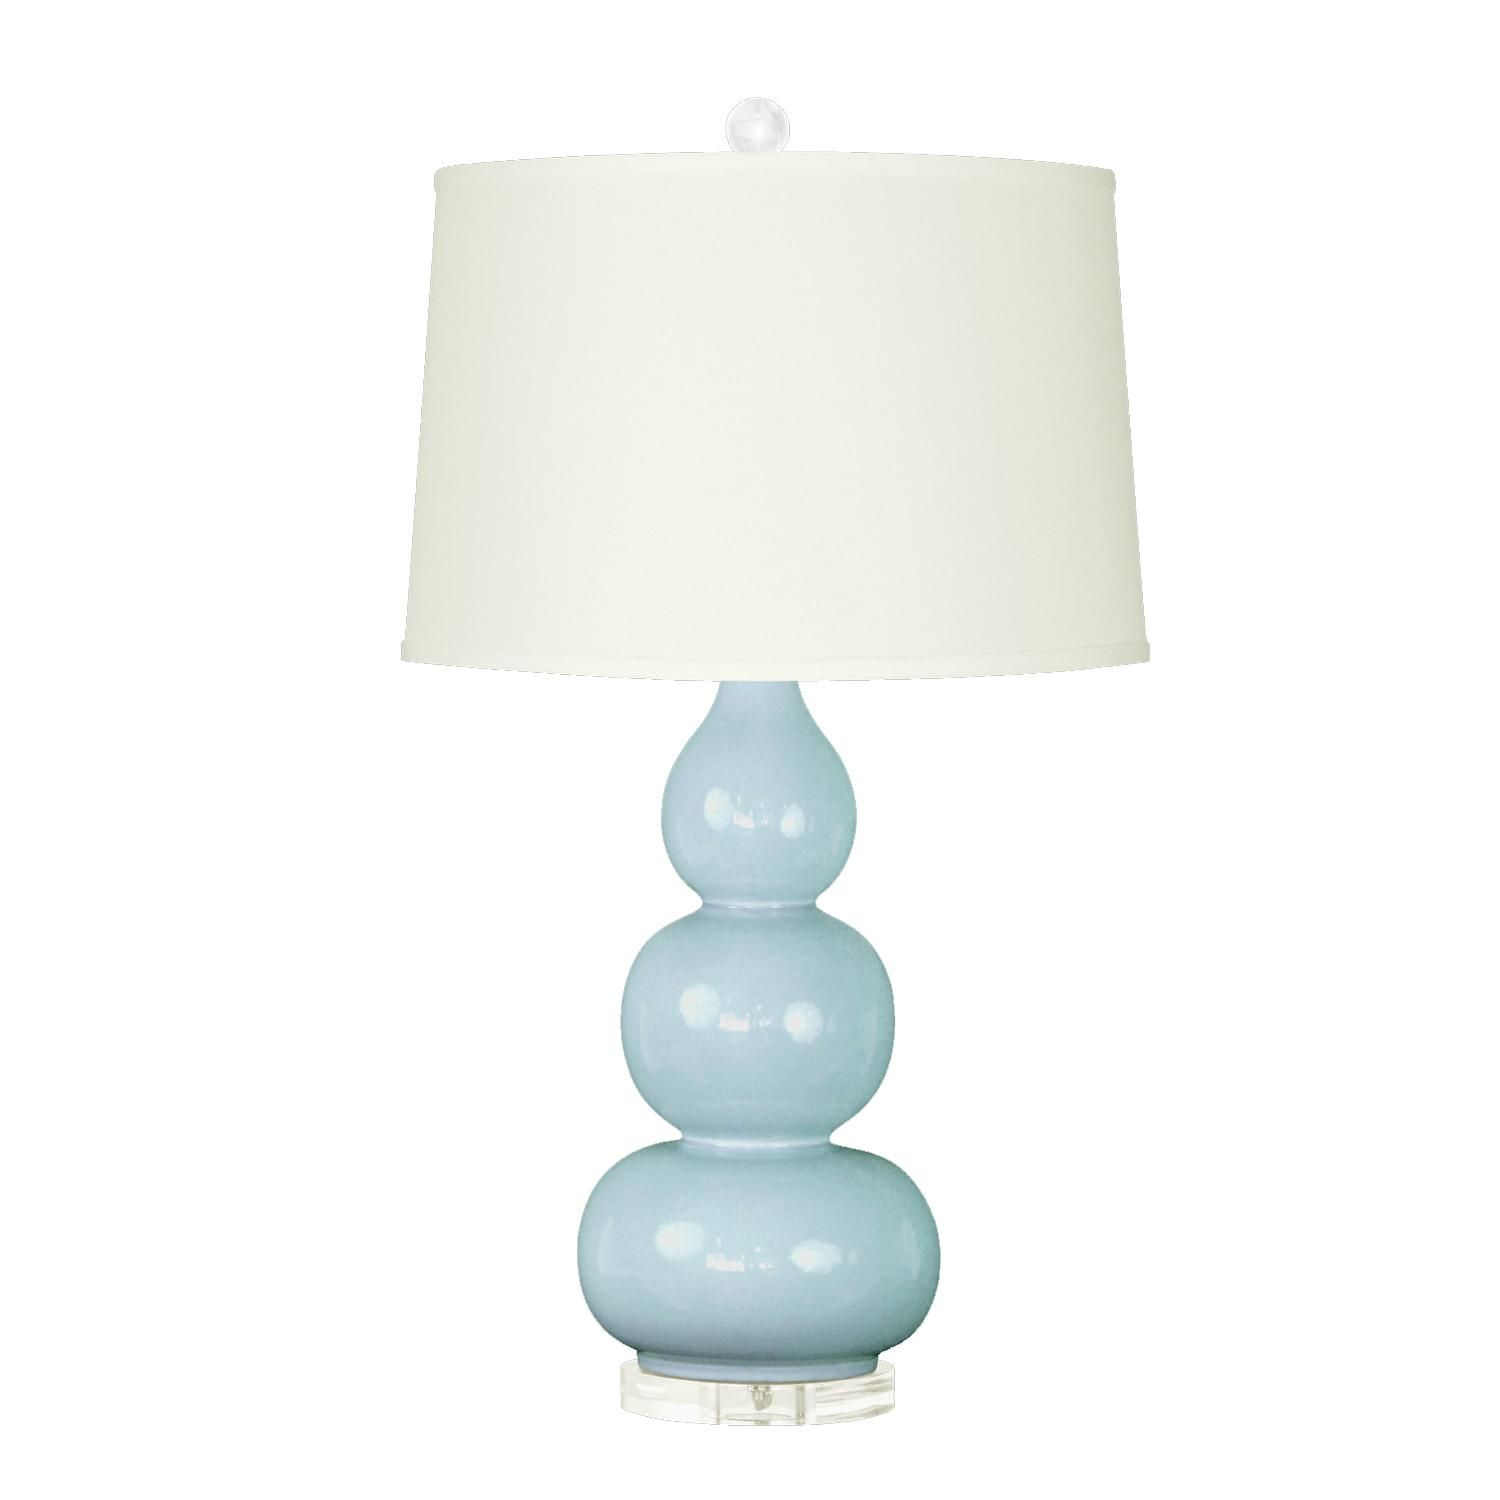 Light Blue American Ceramic Clear Acrylic Finial And Base Blue Table Lamp Green Table Lamp Blue Lamp